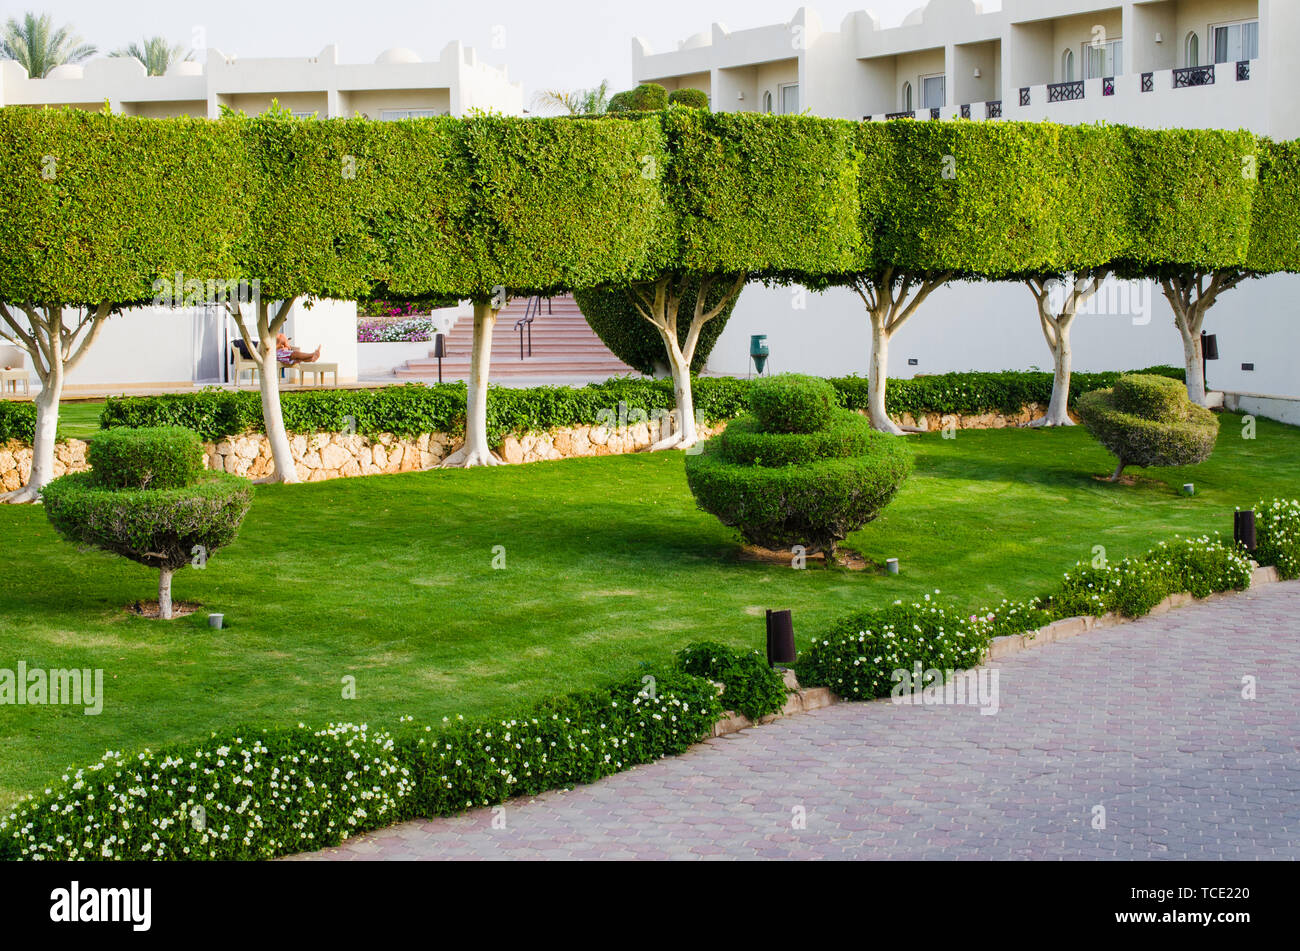 Hotel With Well Groomed Territory Beautiful Lawn With Green Grass And Beautiful Flowers Of Landscape Design At Five Star Hotel Territori Summer In S Stock Photo Alamy